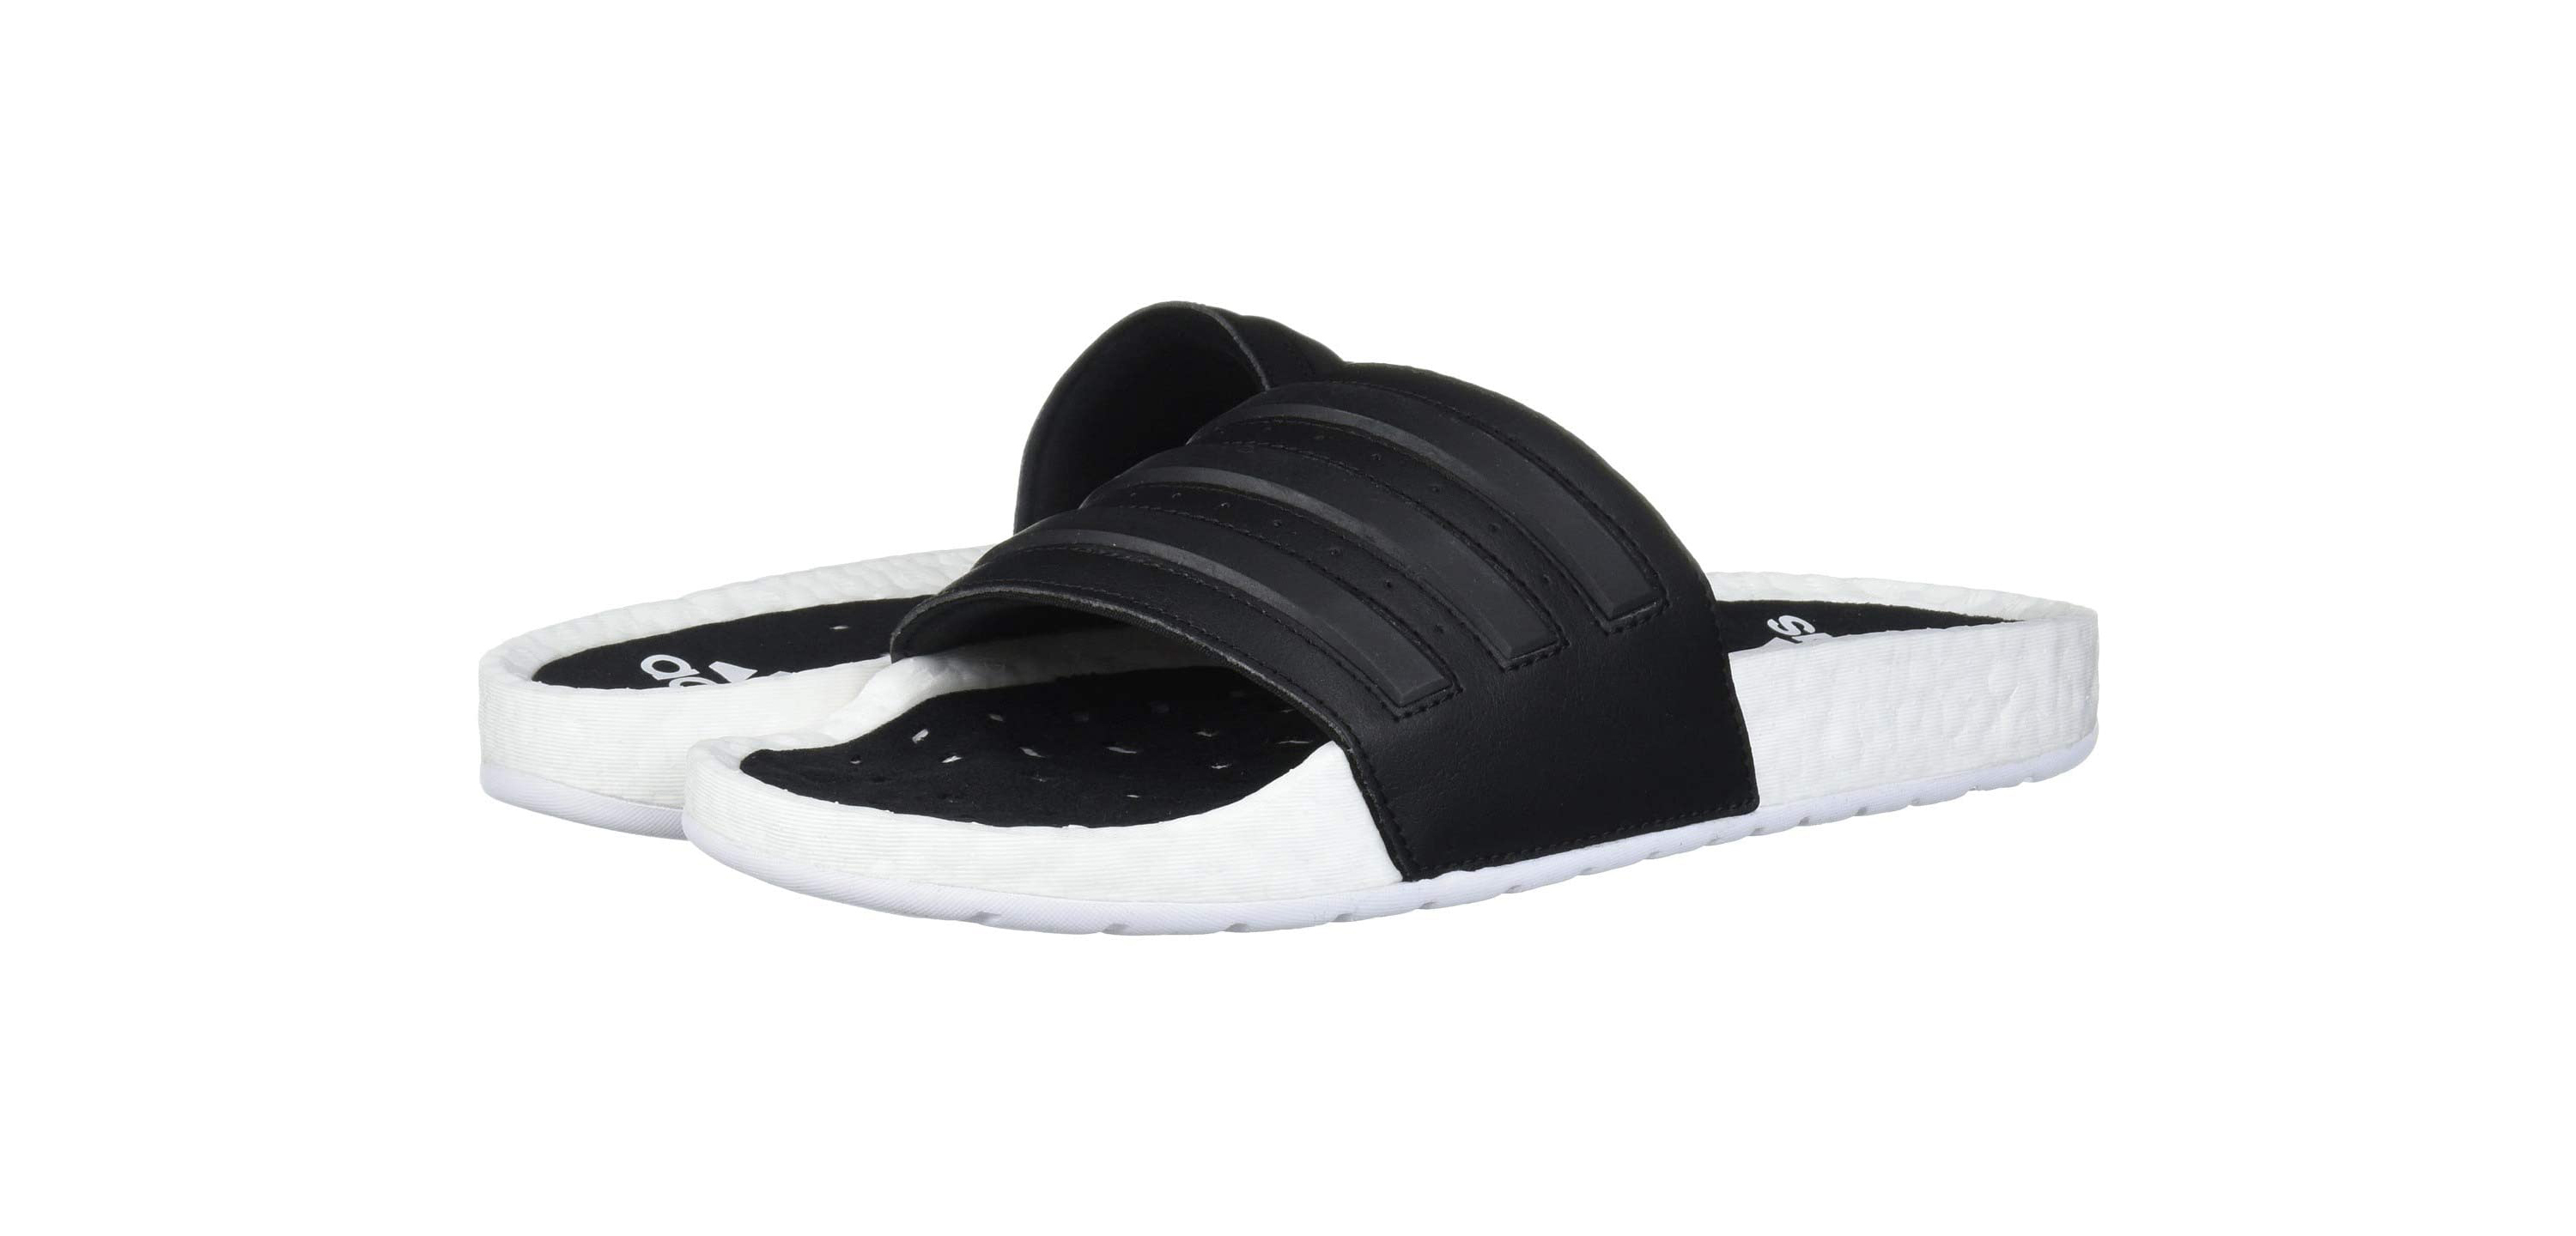 These Adidas Sandals Are On Sale At